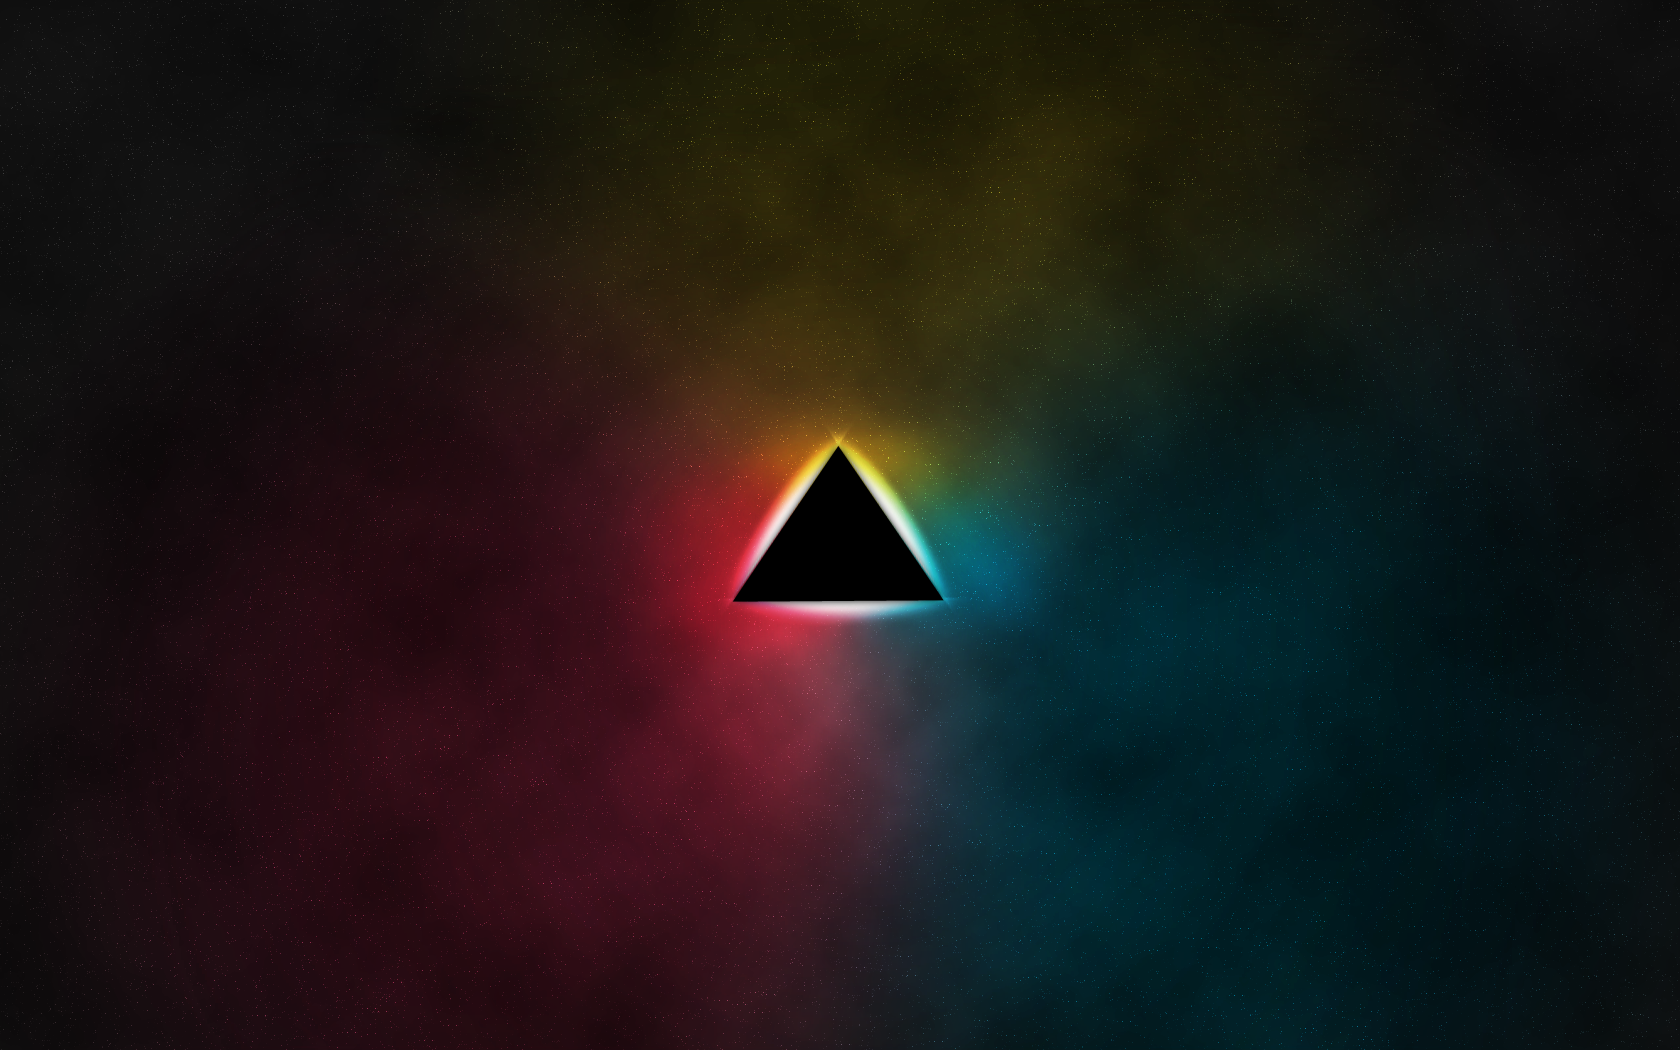 triangle abstract wallpapers hd - photo #35